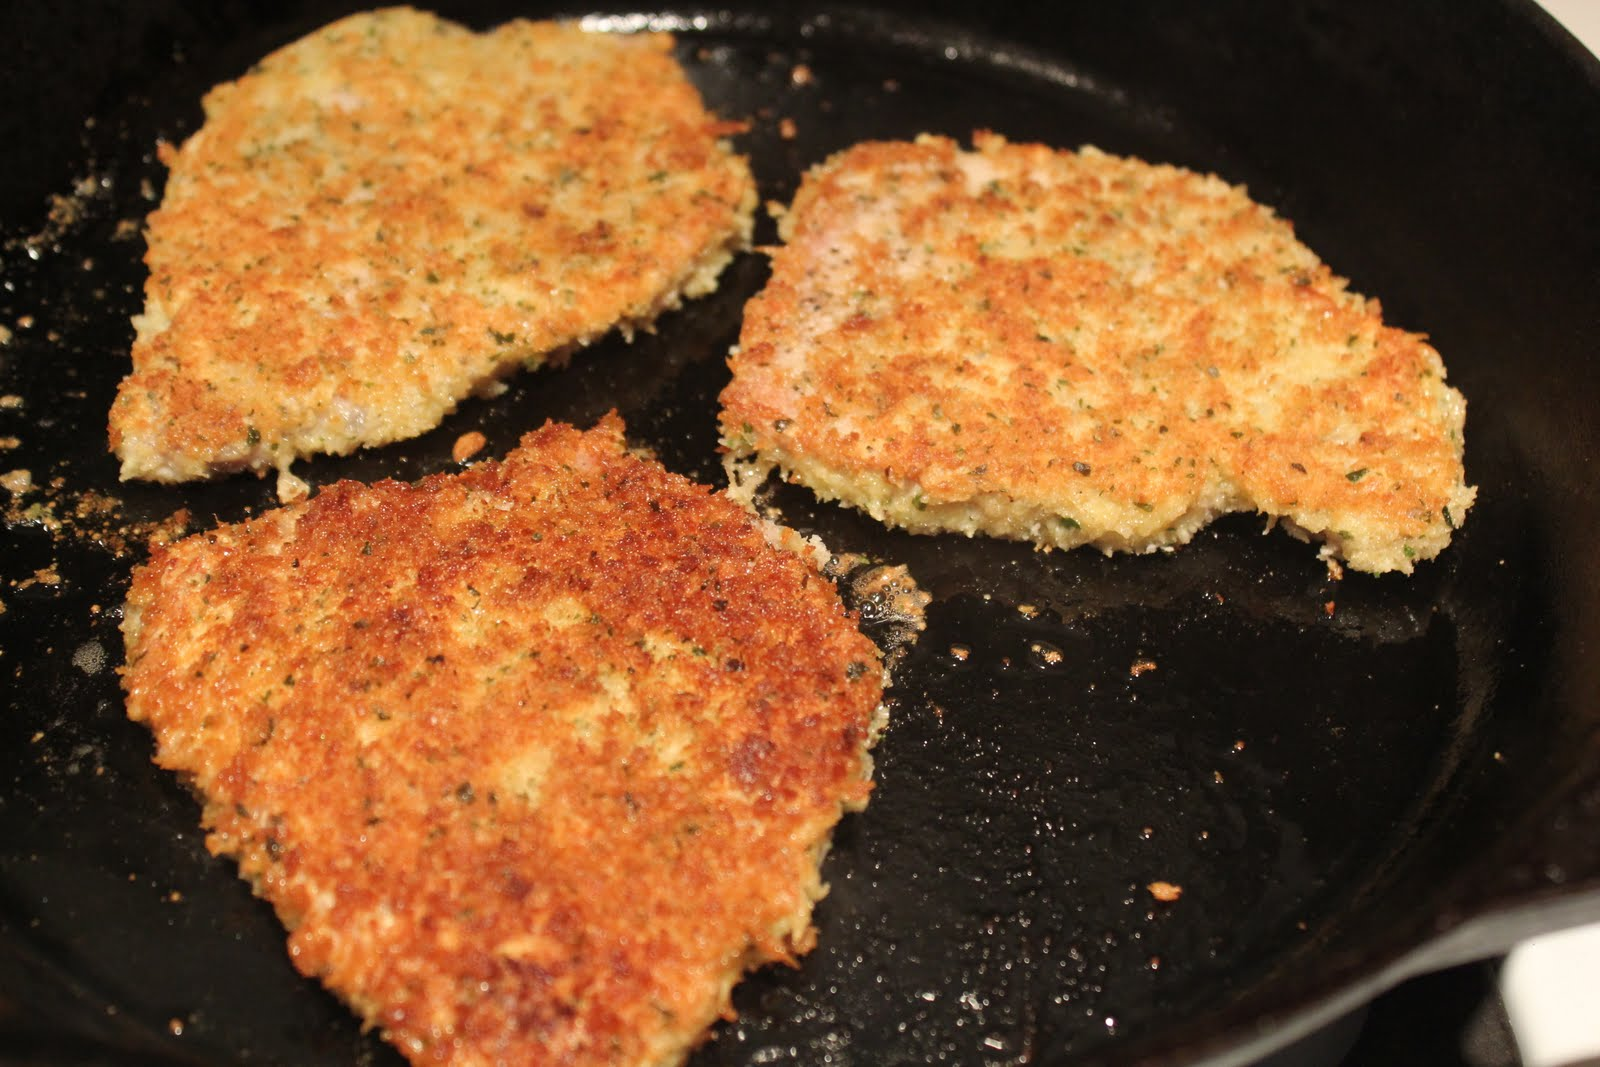 Near to Nothing: Breaded Pork Chops